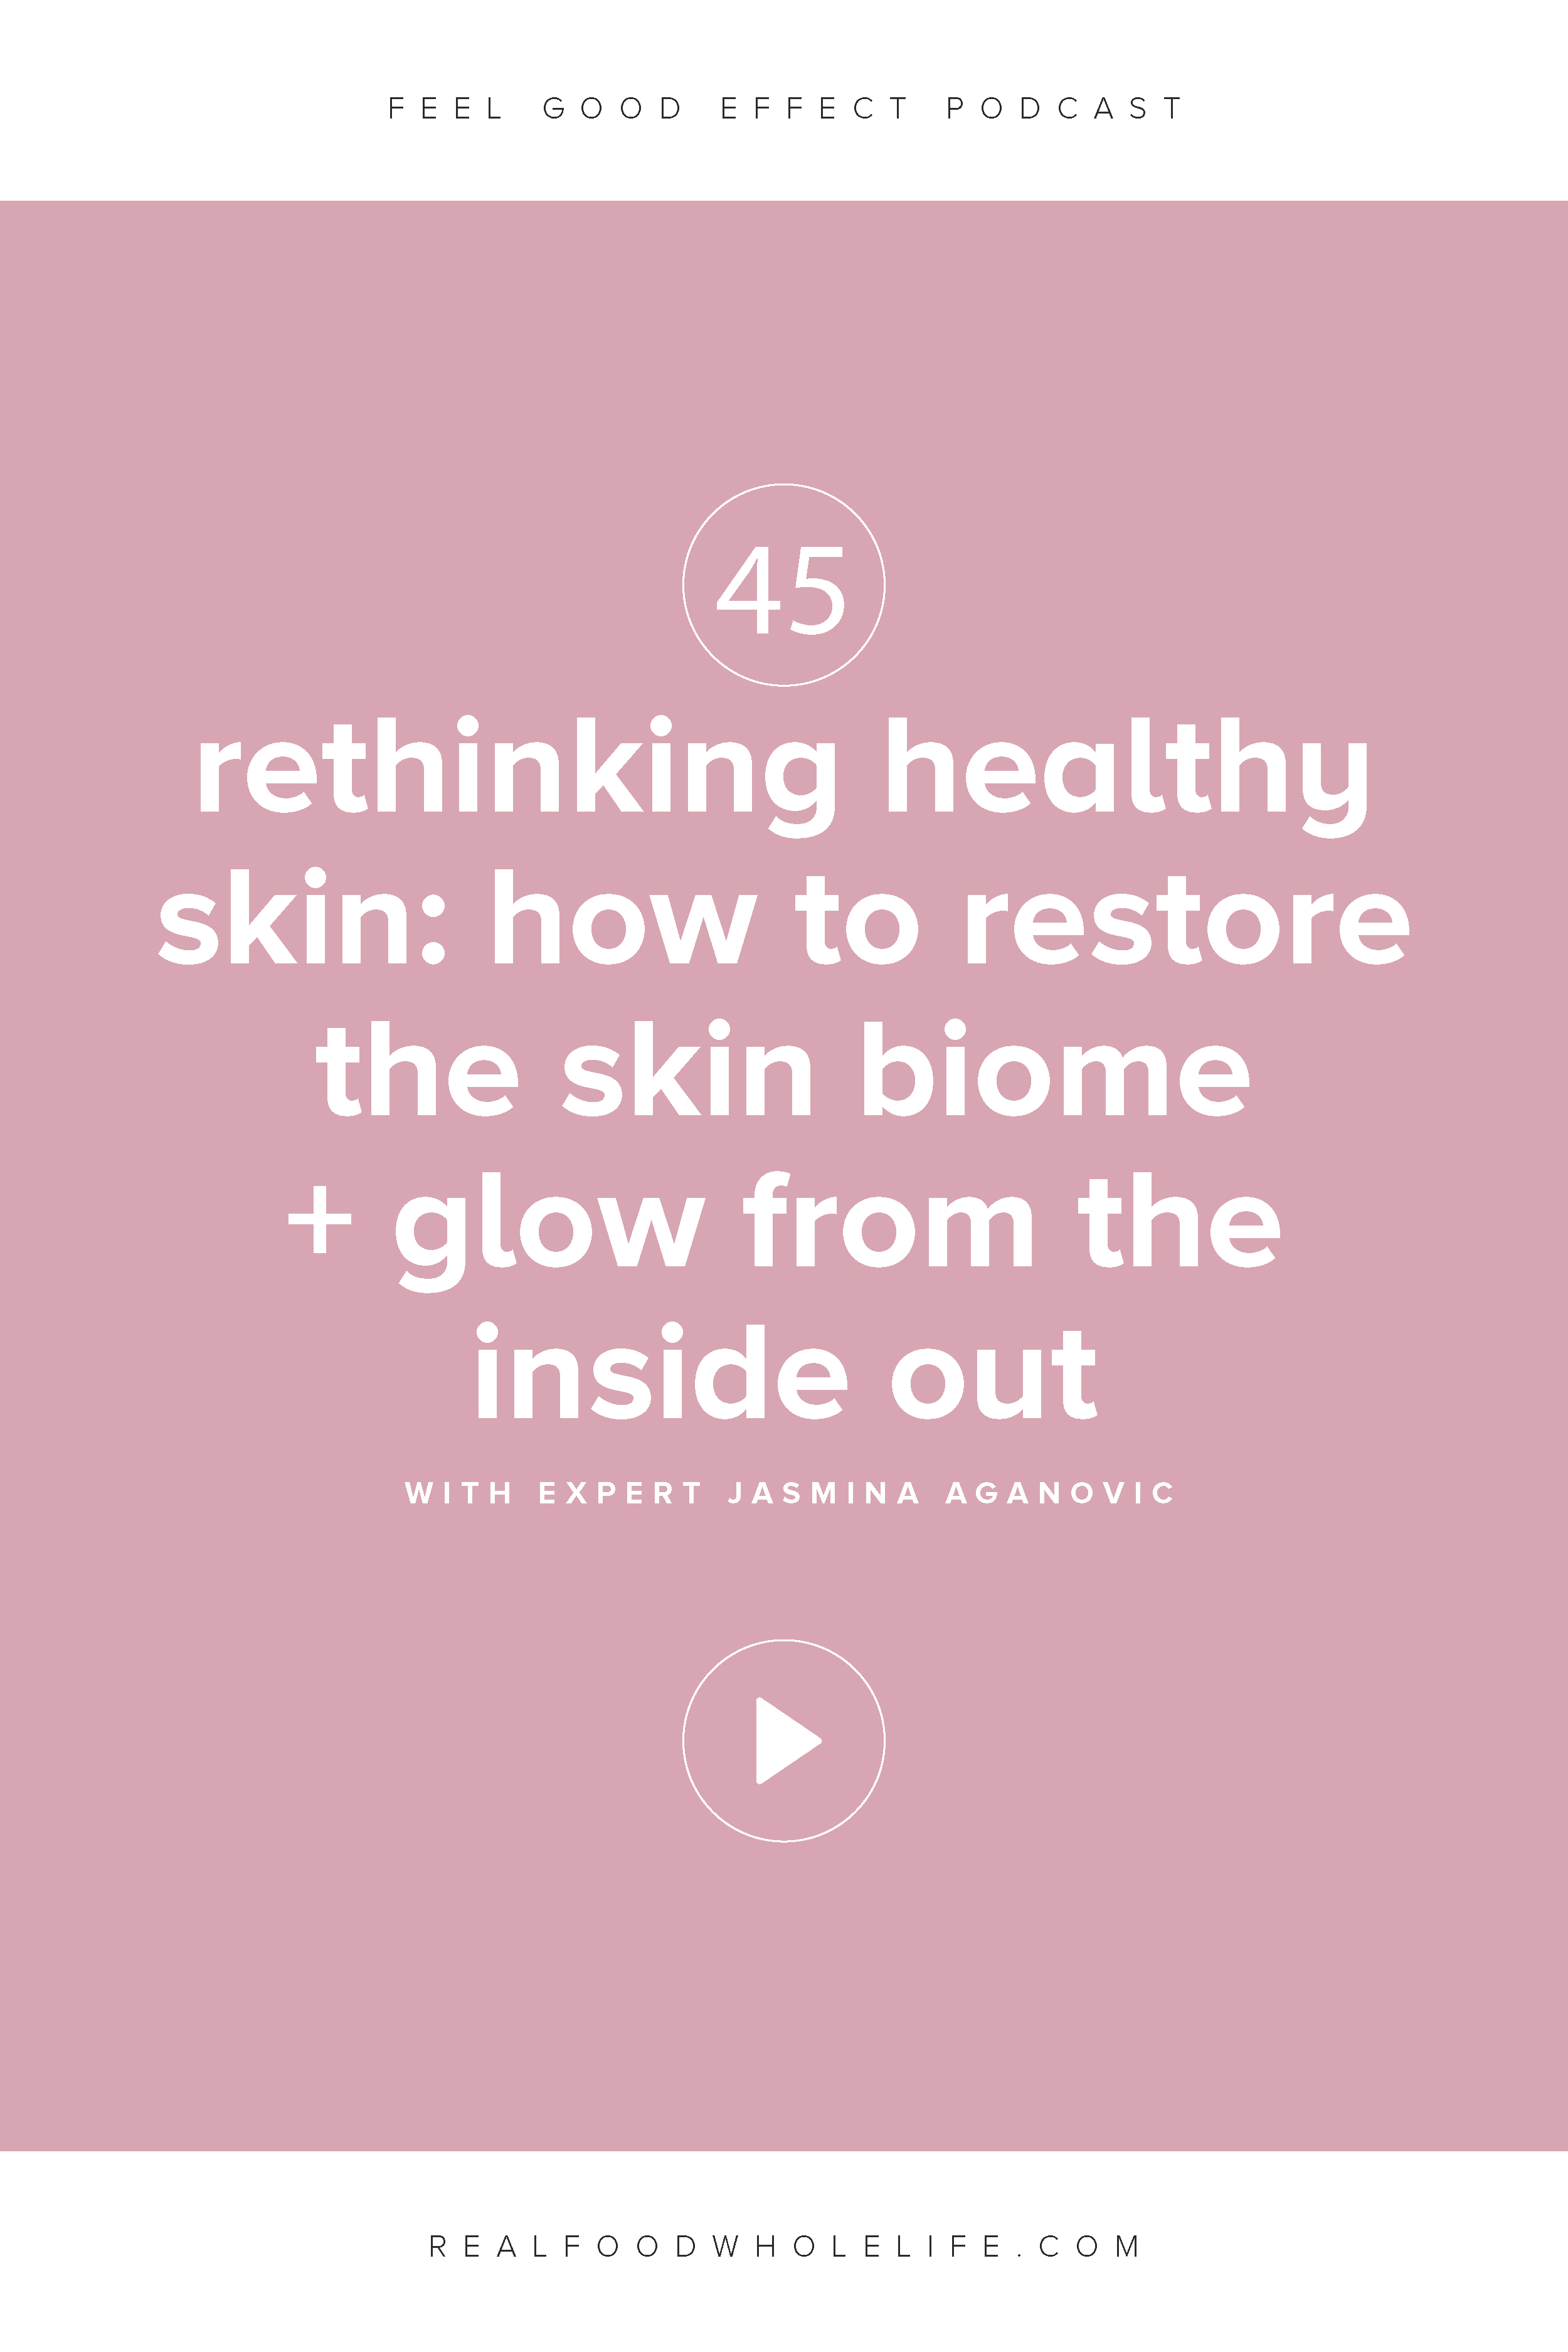 Rethinking Healthy Skin- How to Restore the Skin Biome and Glow from the Inside Out